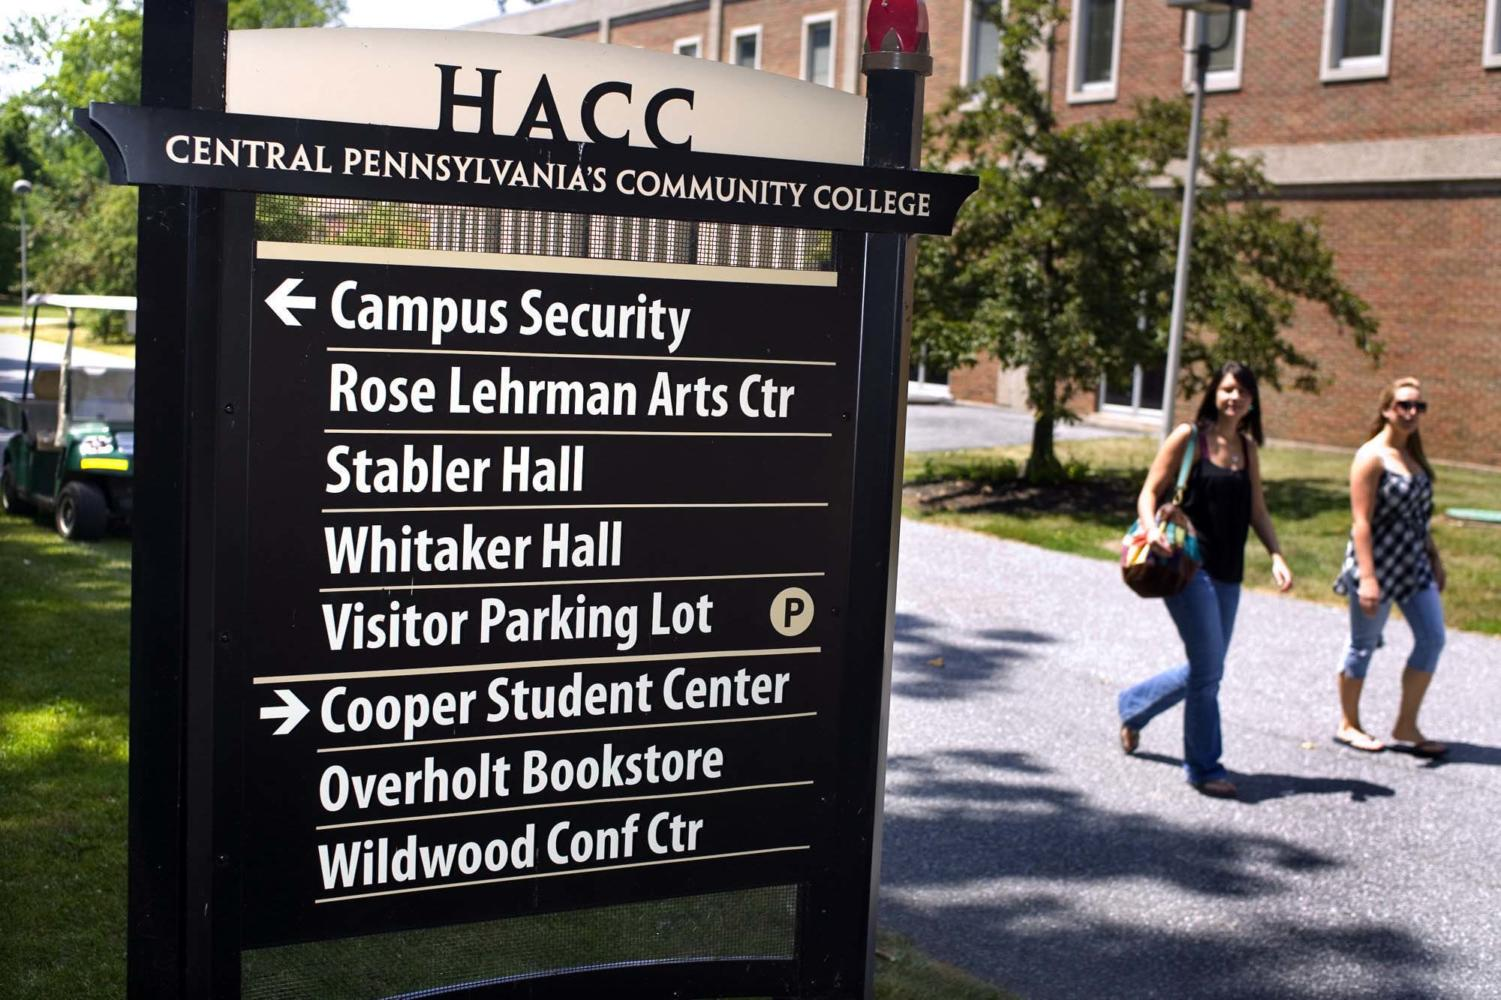 The Harrisburg Area Community College, which serves more than 17,000 students on campuses in Harrisburg York, Lancaster, Lebanon and Gettysburg, has eliminated all on-campus mental health counseling, a move experts said was risky at a time of growing demand.